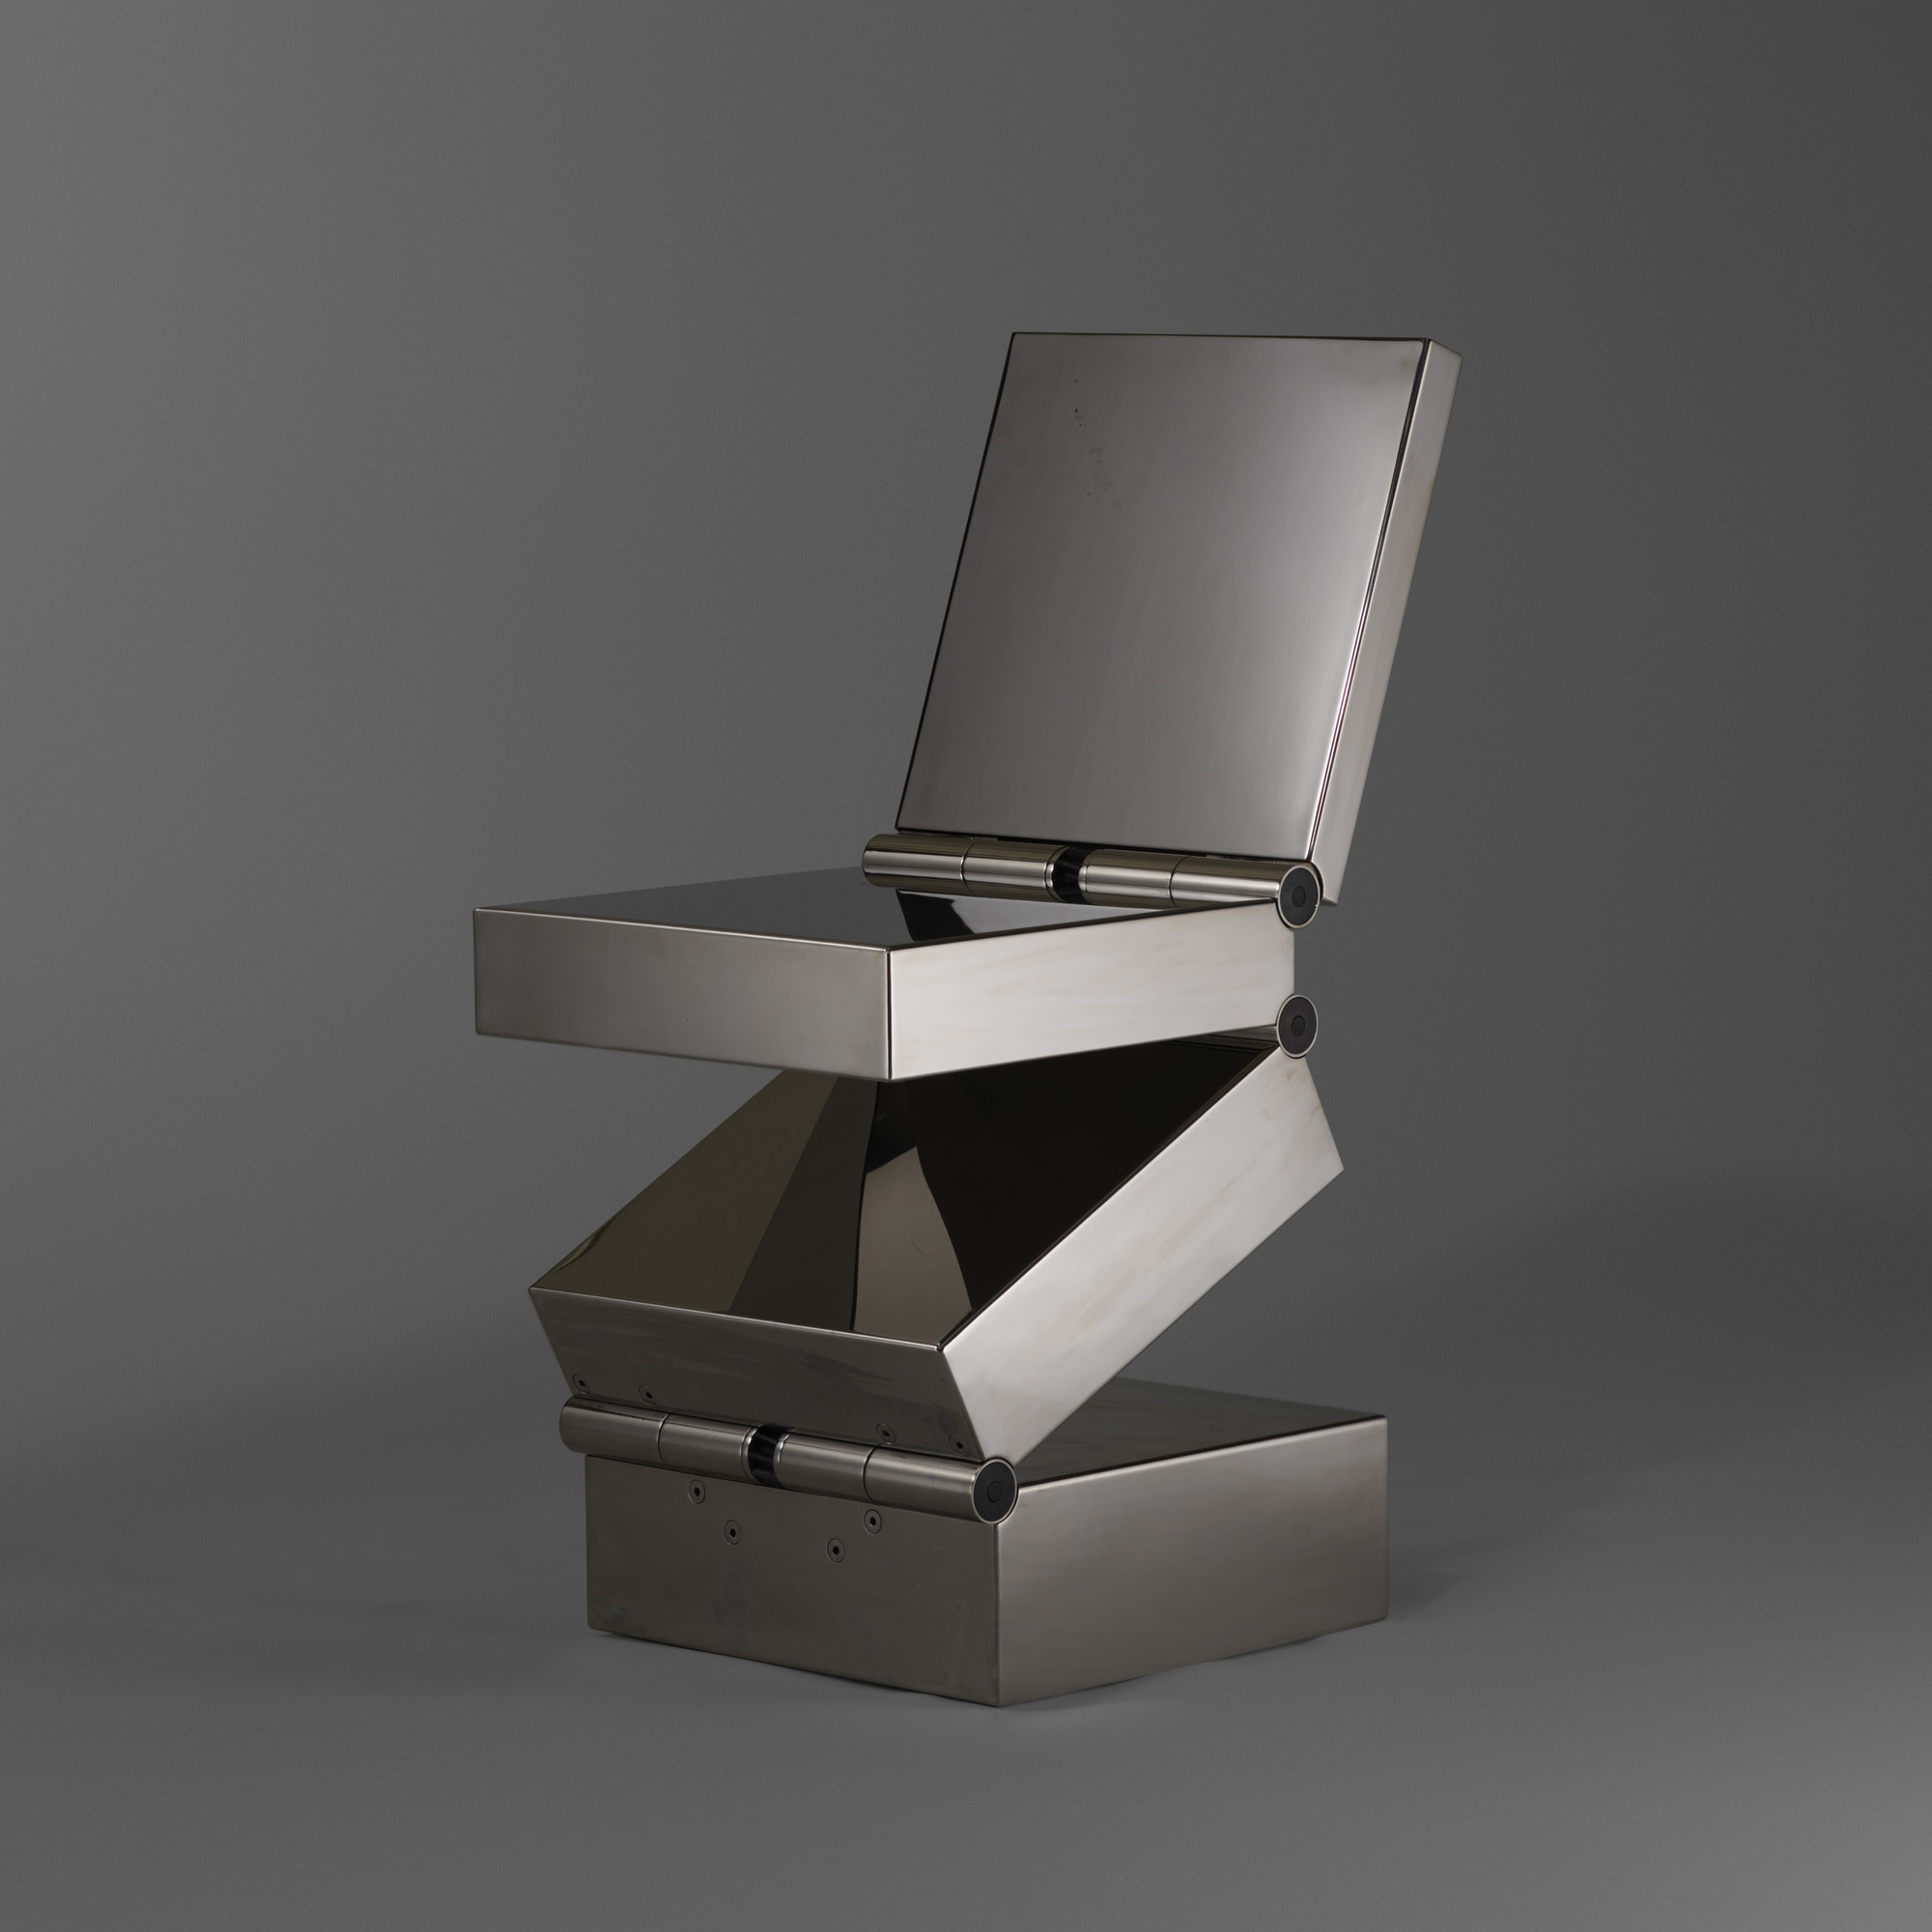 276: Ron Arad / Box in Four Movements chair (1 of 5)